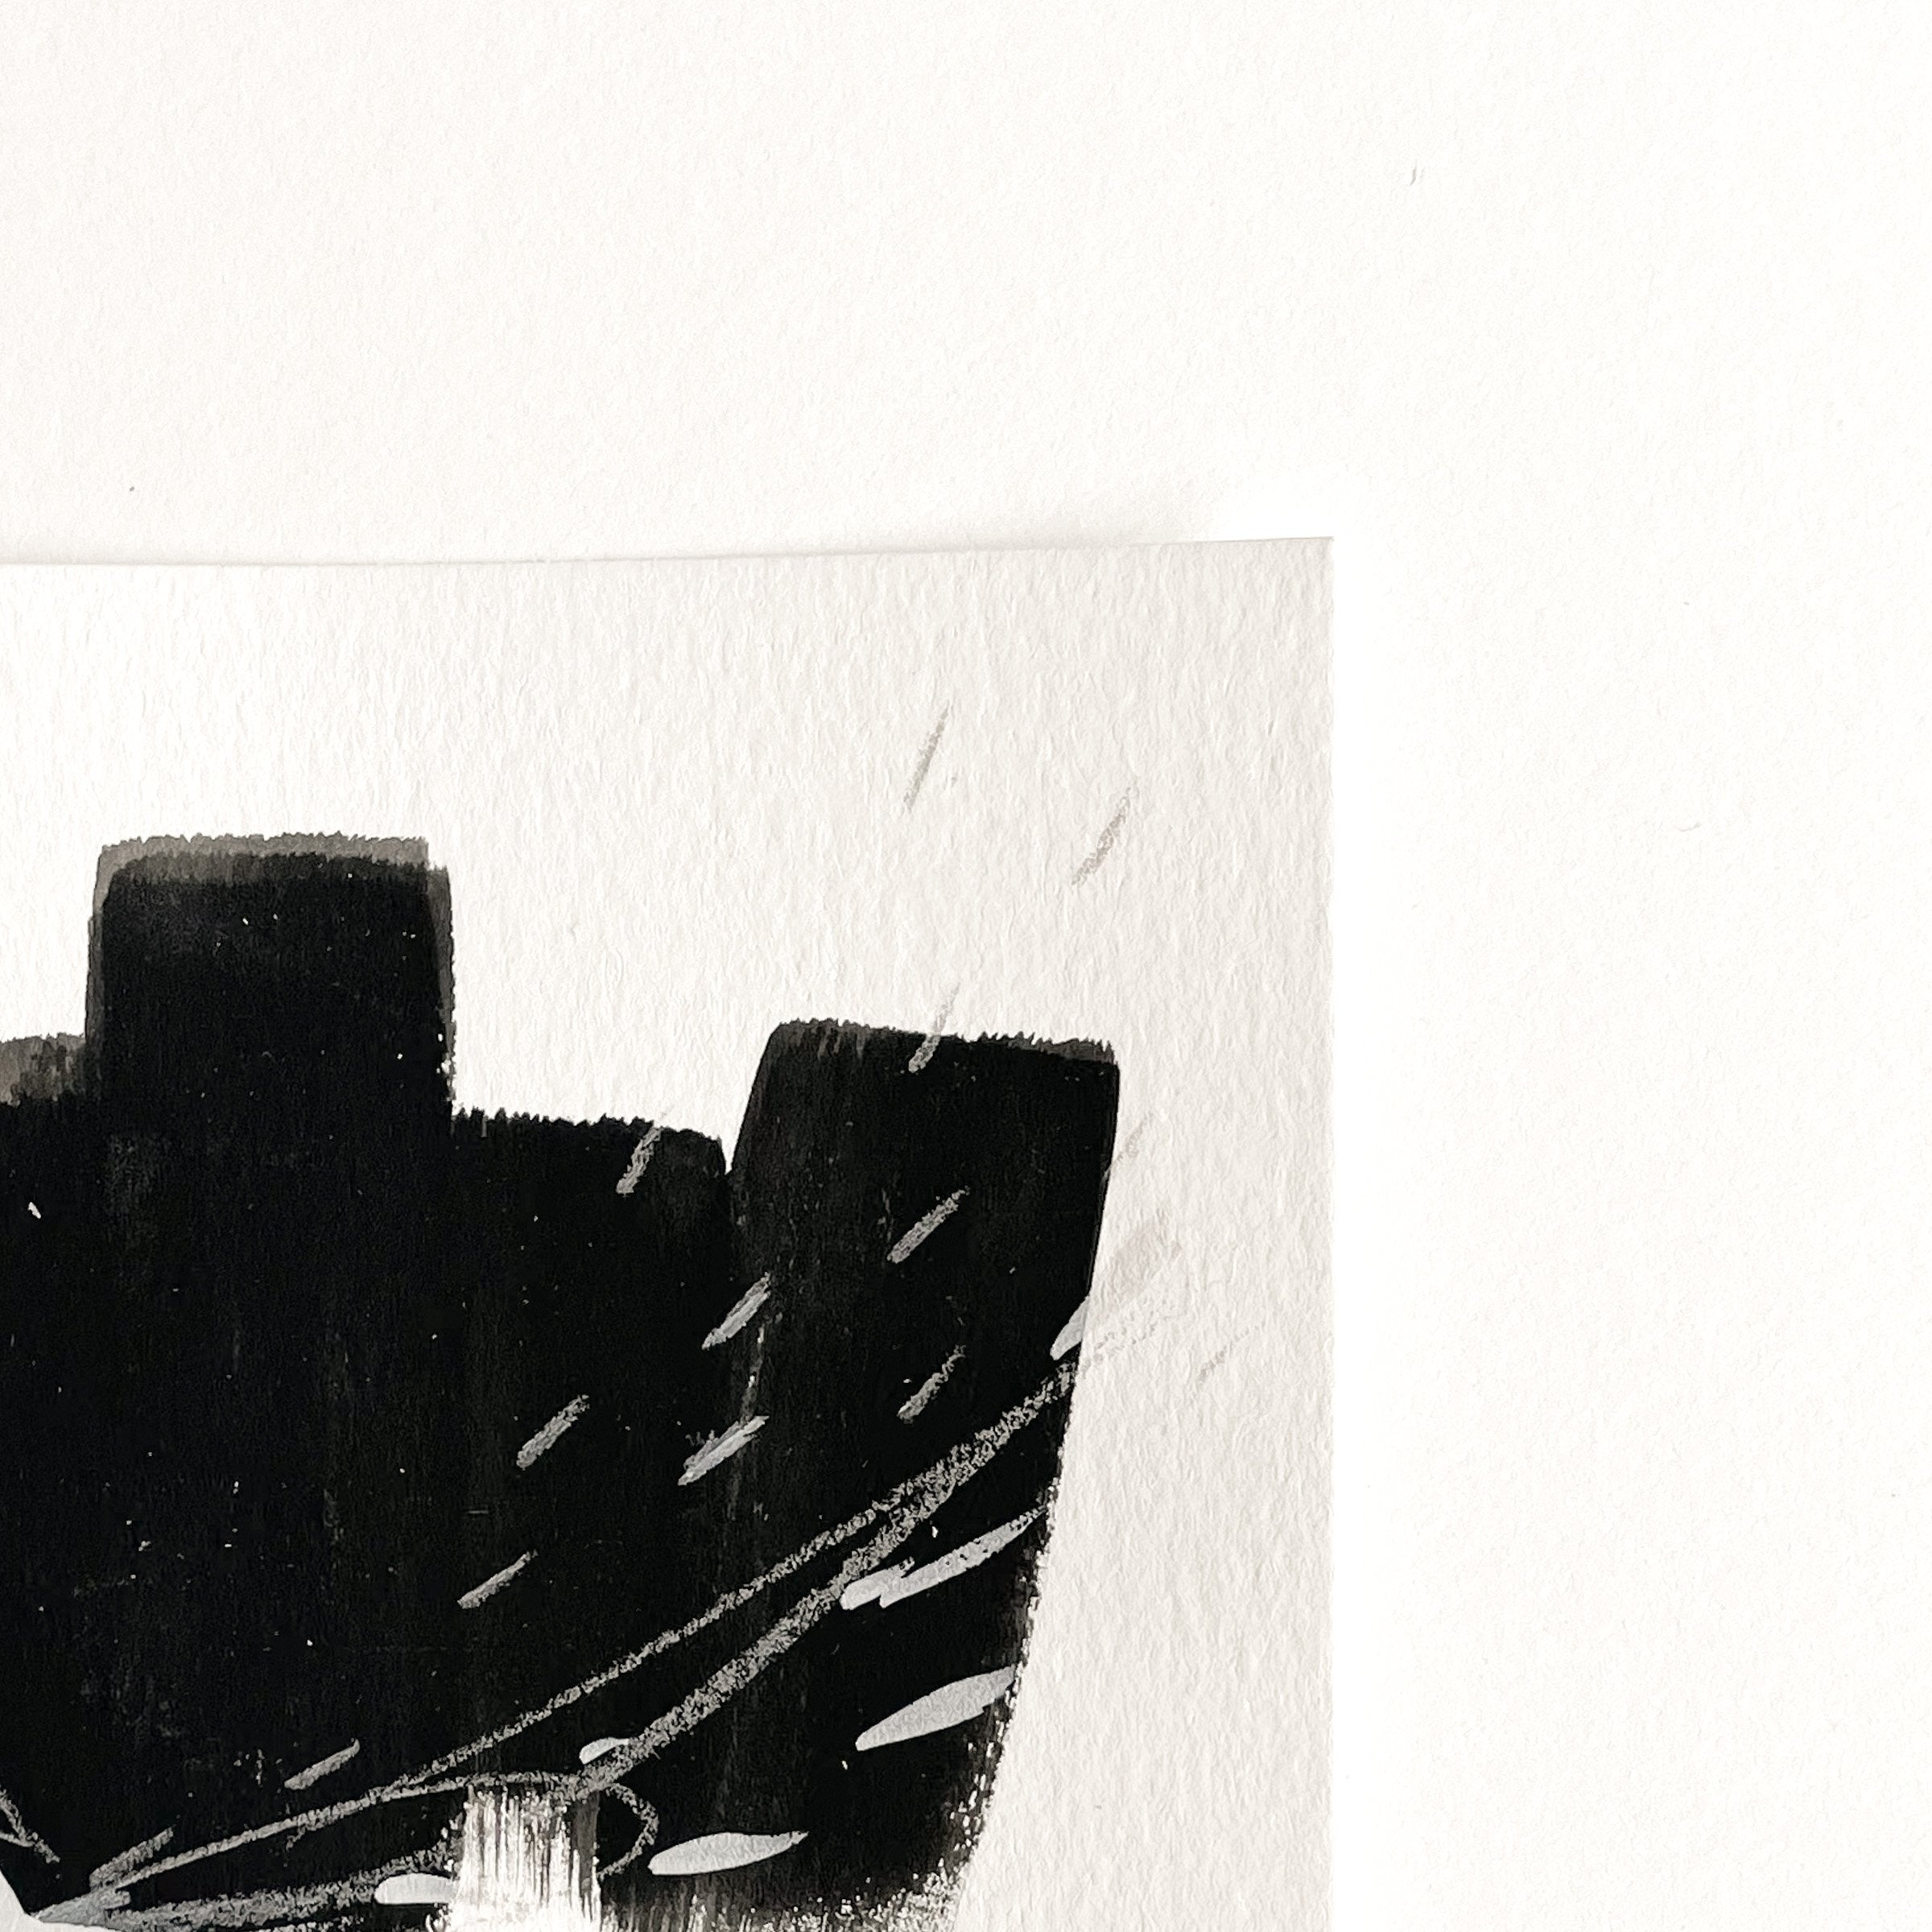 Stay 14 - Neutral, Black and white abstract painting on paper by artist Kait DeWolff. Kaitcreative